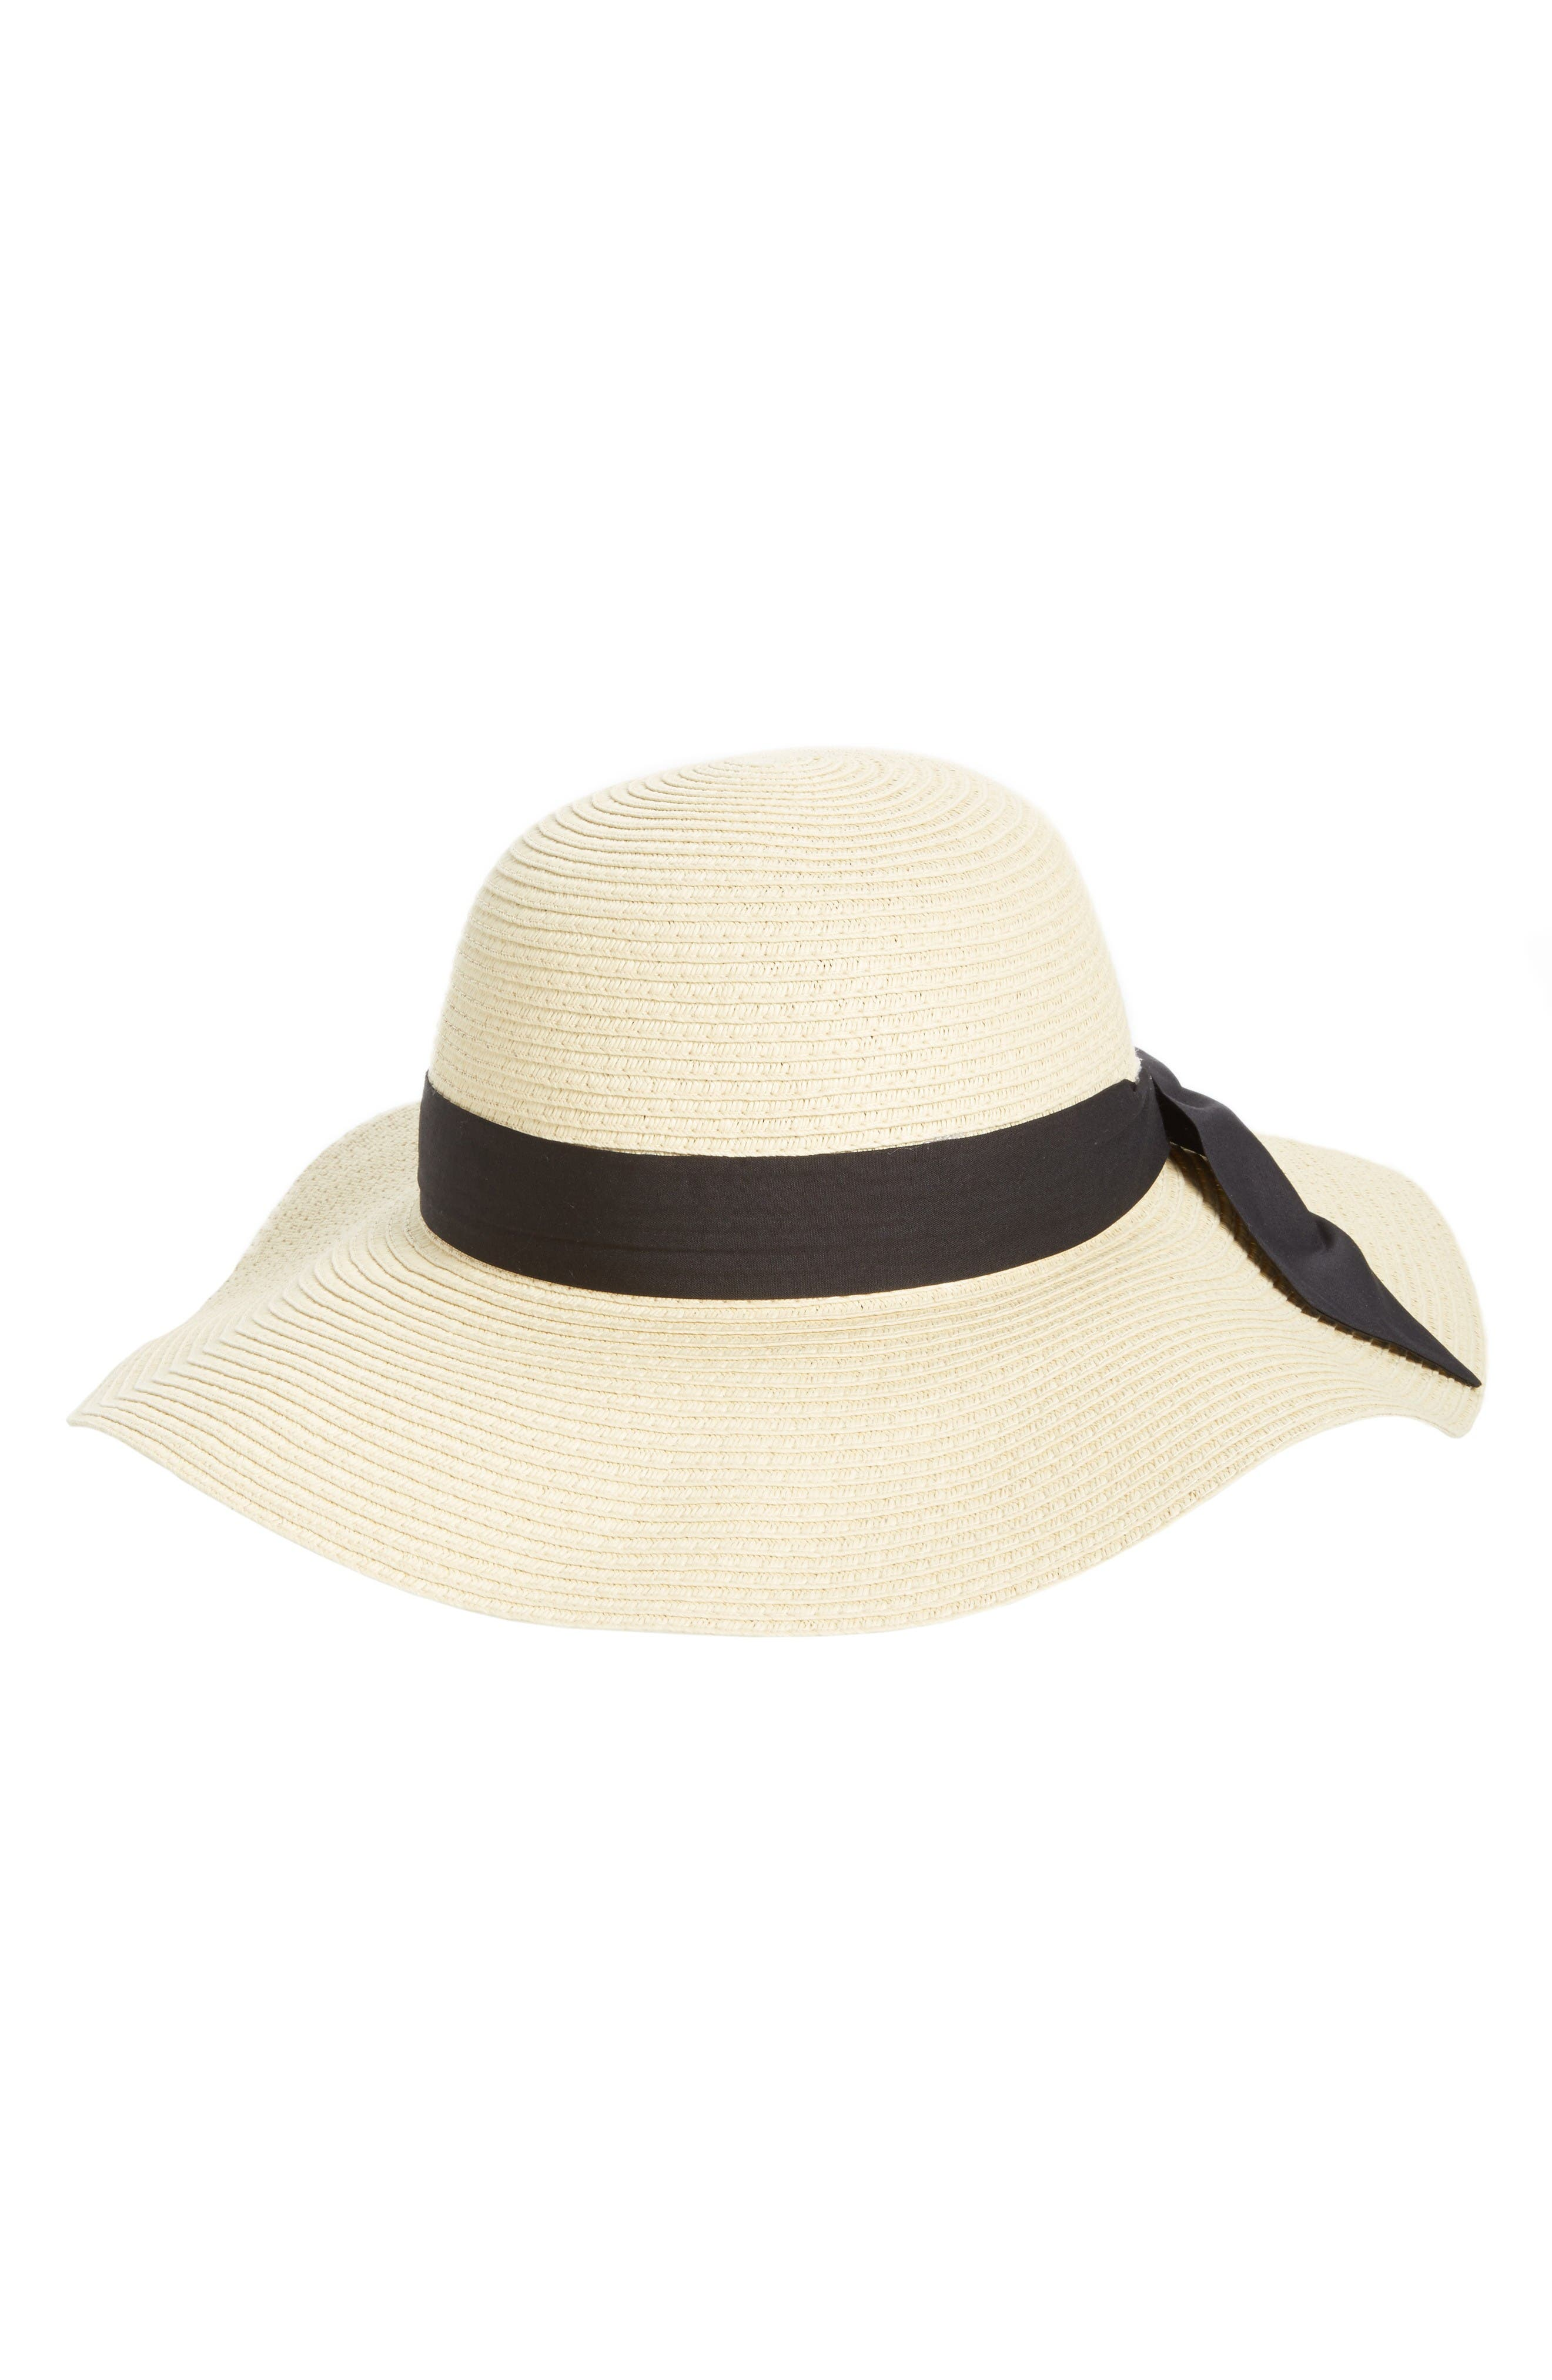 Bow Band Floppy Straw Hat,                         Main,                         color, Natural/ Black